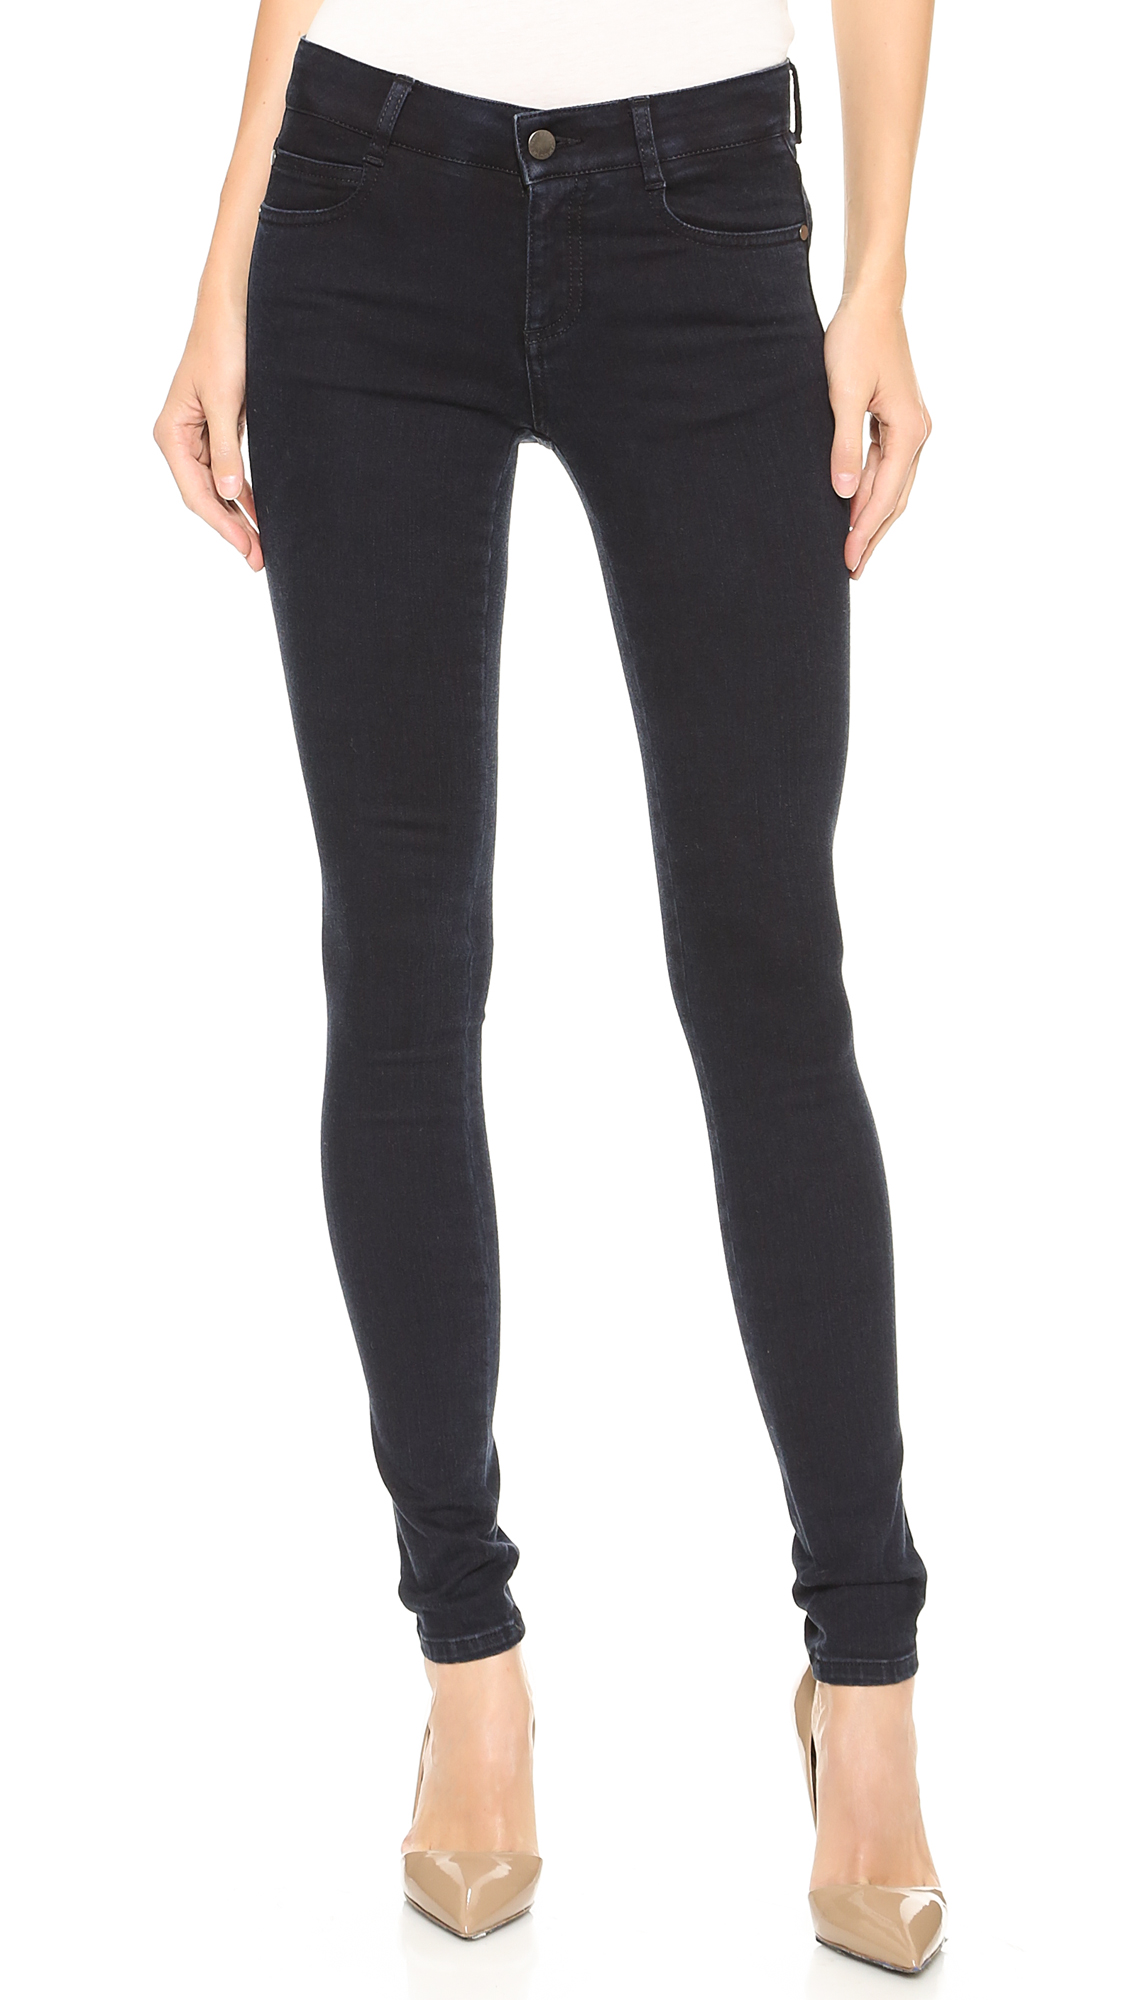 Stella McCartney The Skinny Long Jeans - Blue/Black